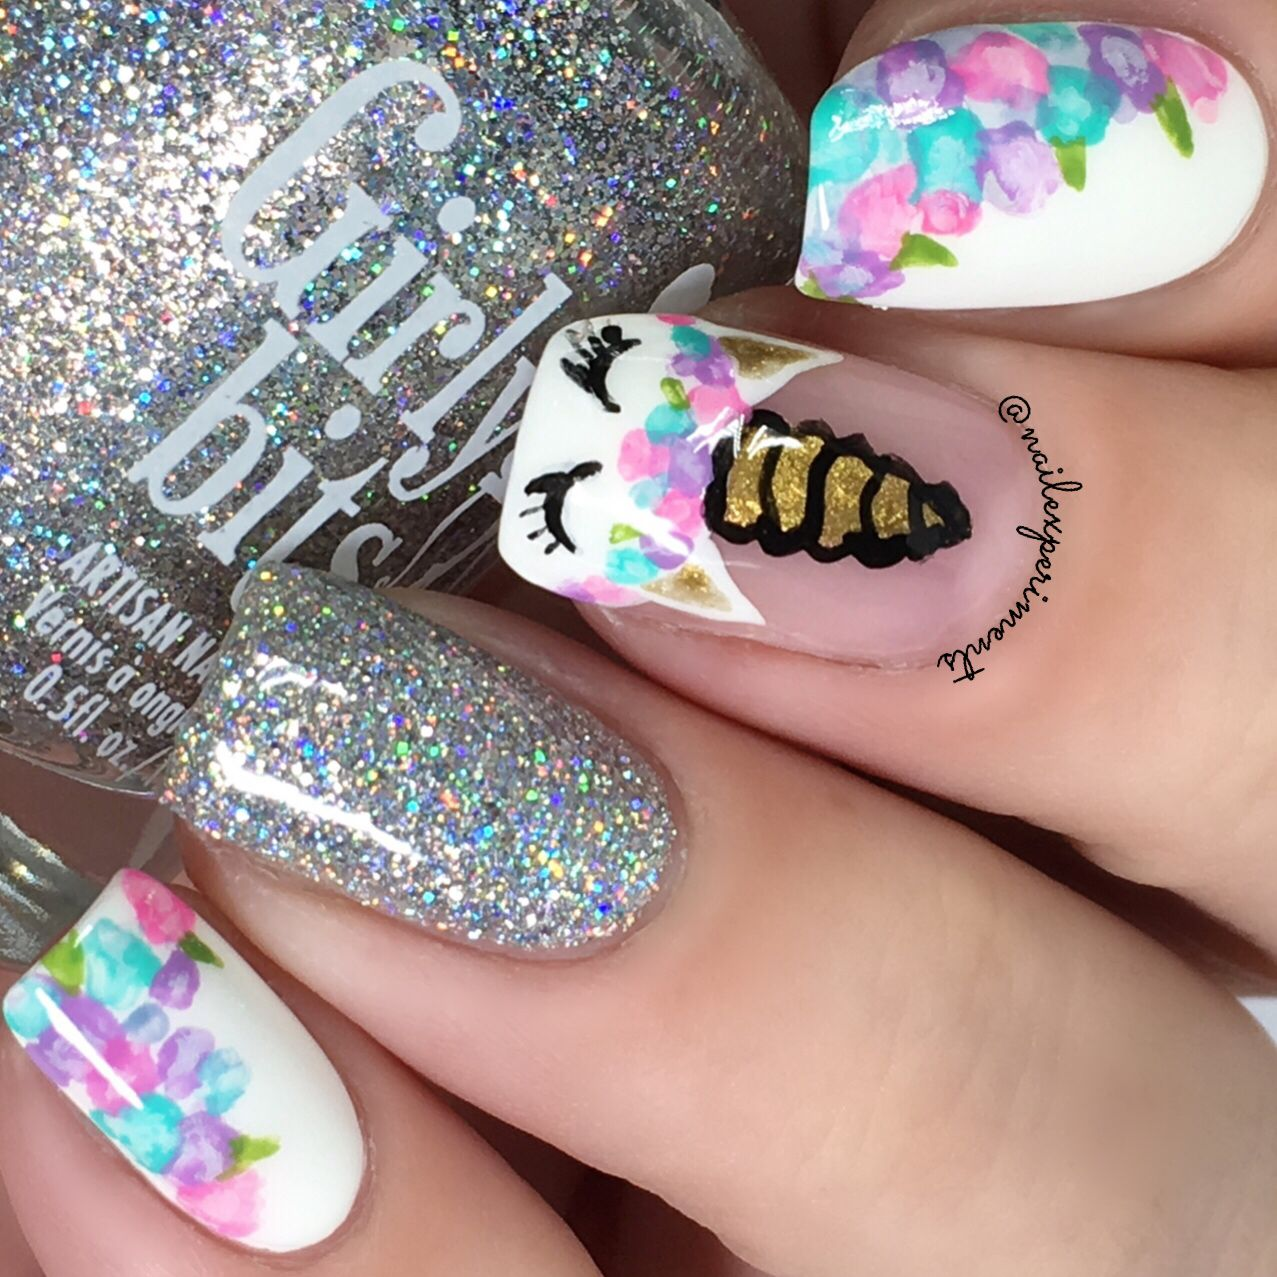 Cute unicorn nails | Tattoos | Pinterest | Unicorn nails, Unicorns ...